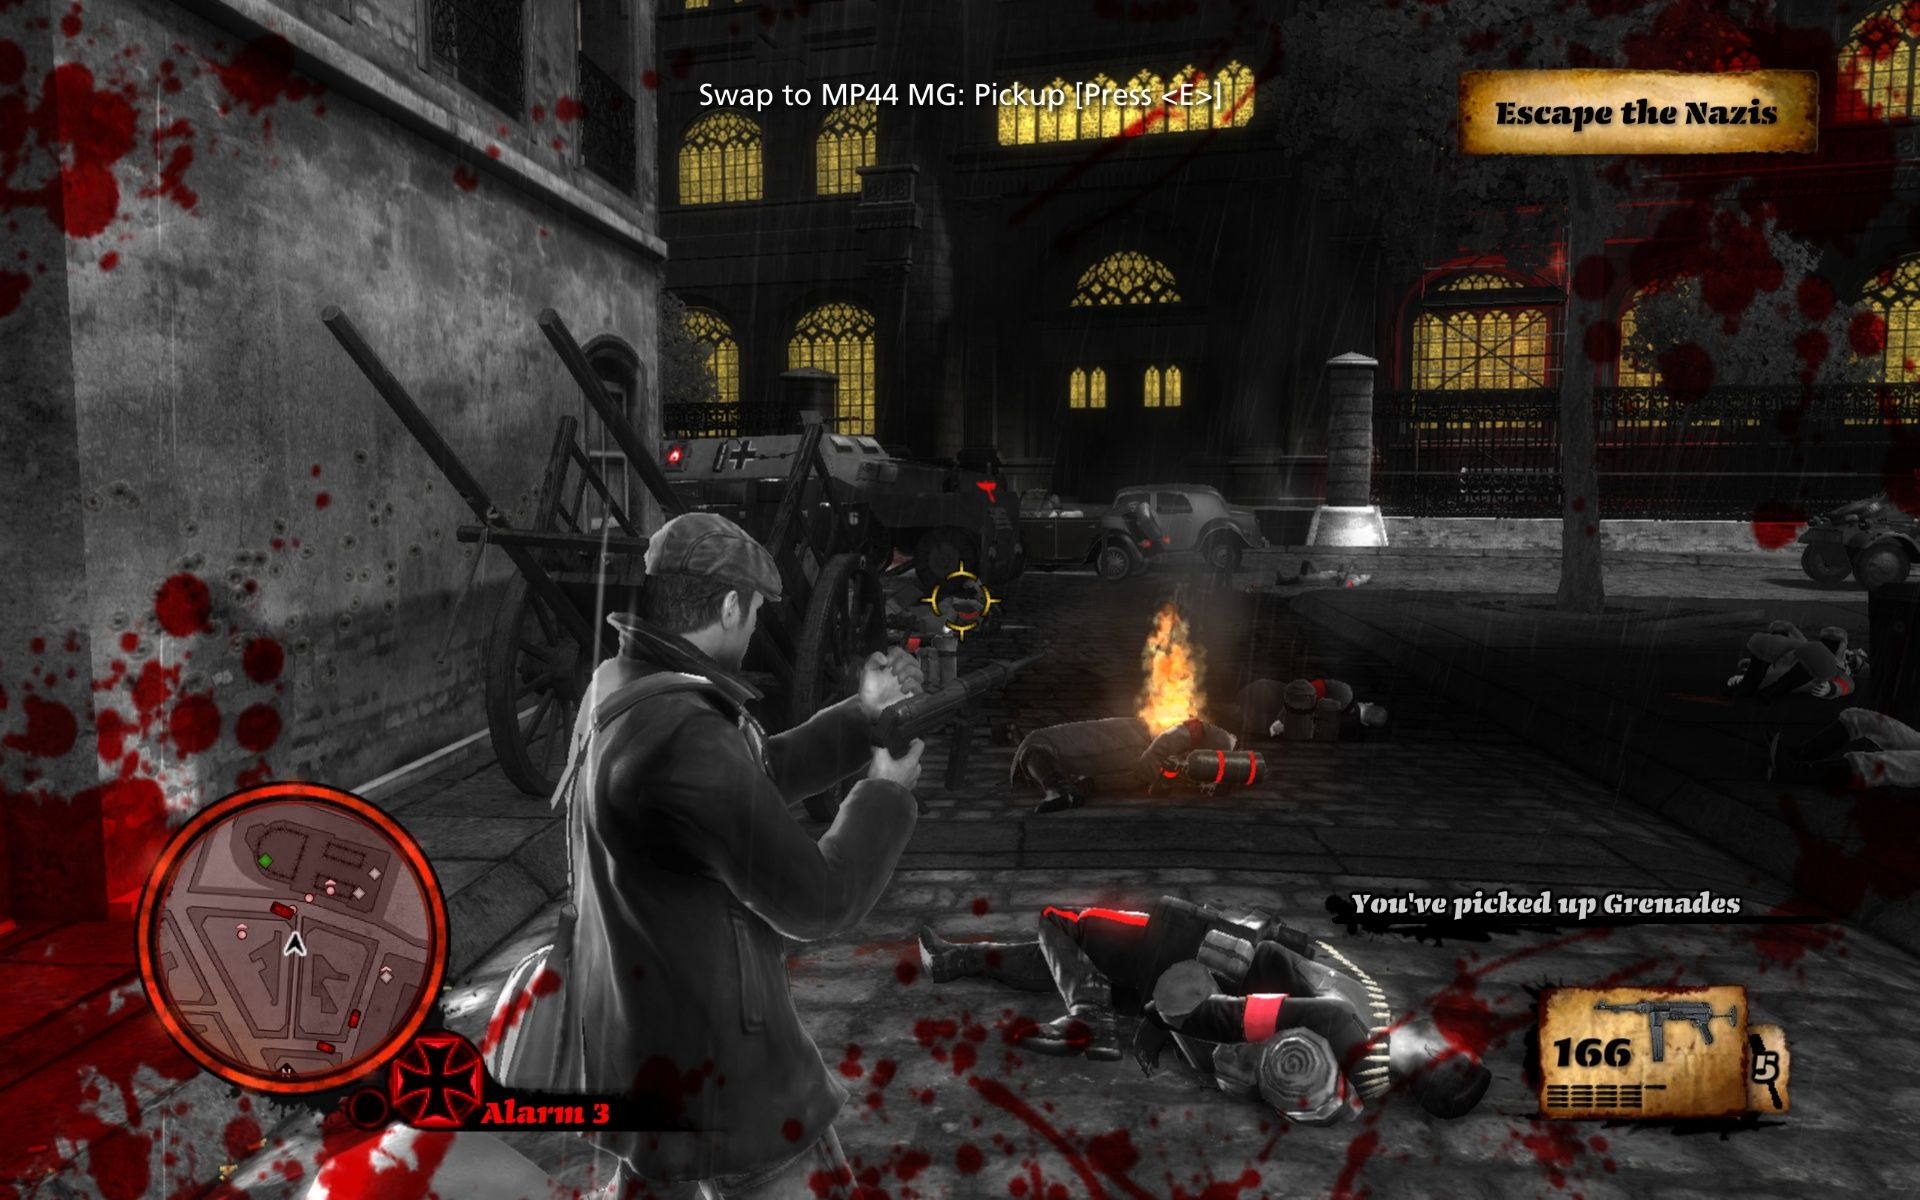 415382-the-saboteur-windows-screenshot-unleashing-mayhem-near-notre.jpg